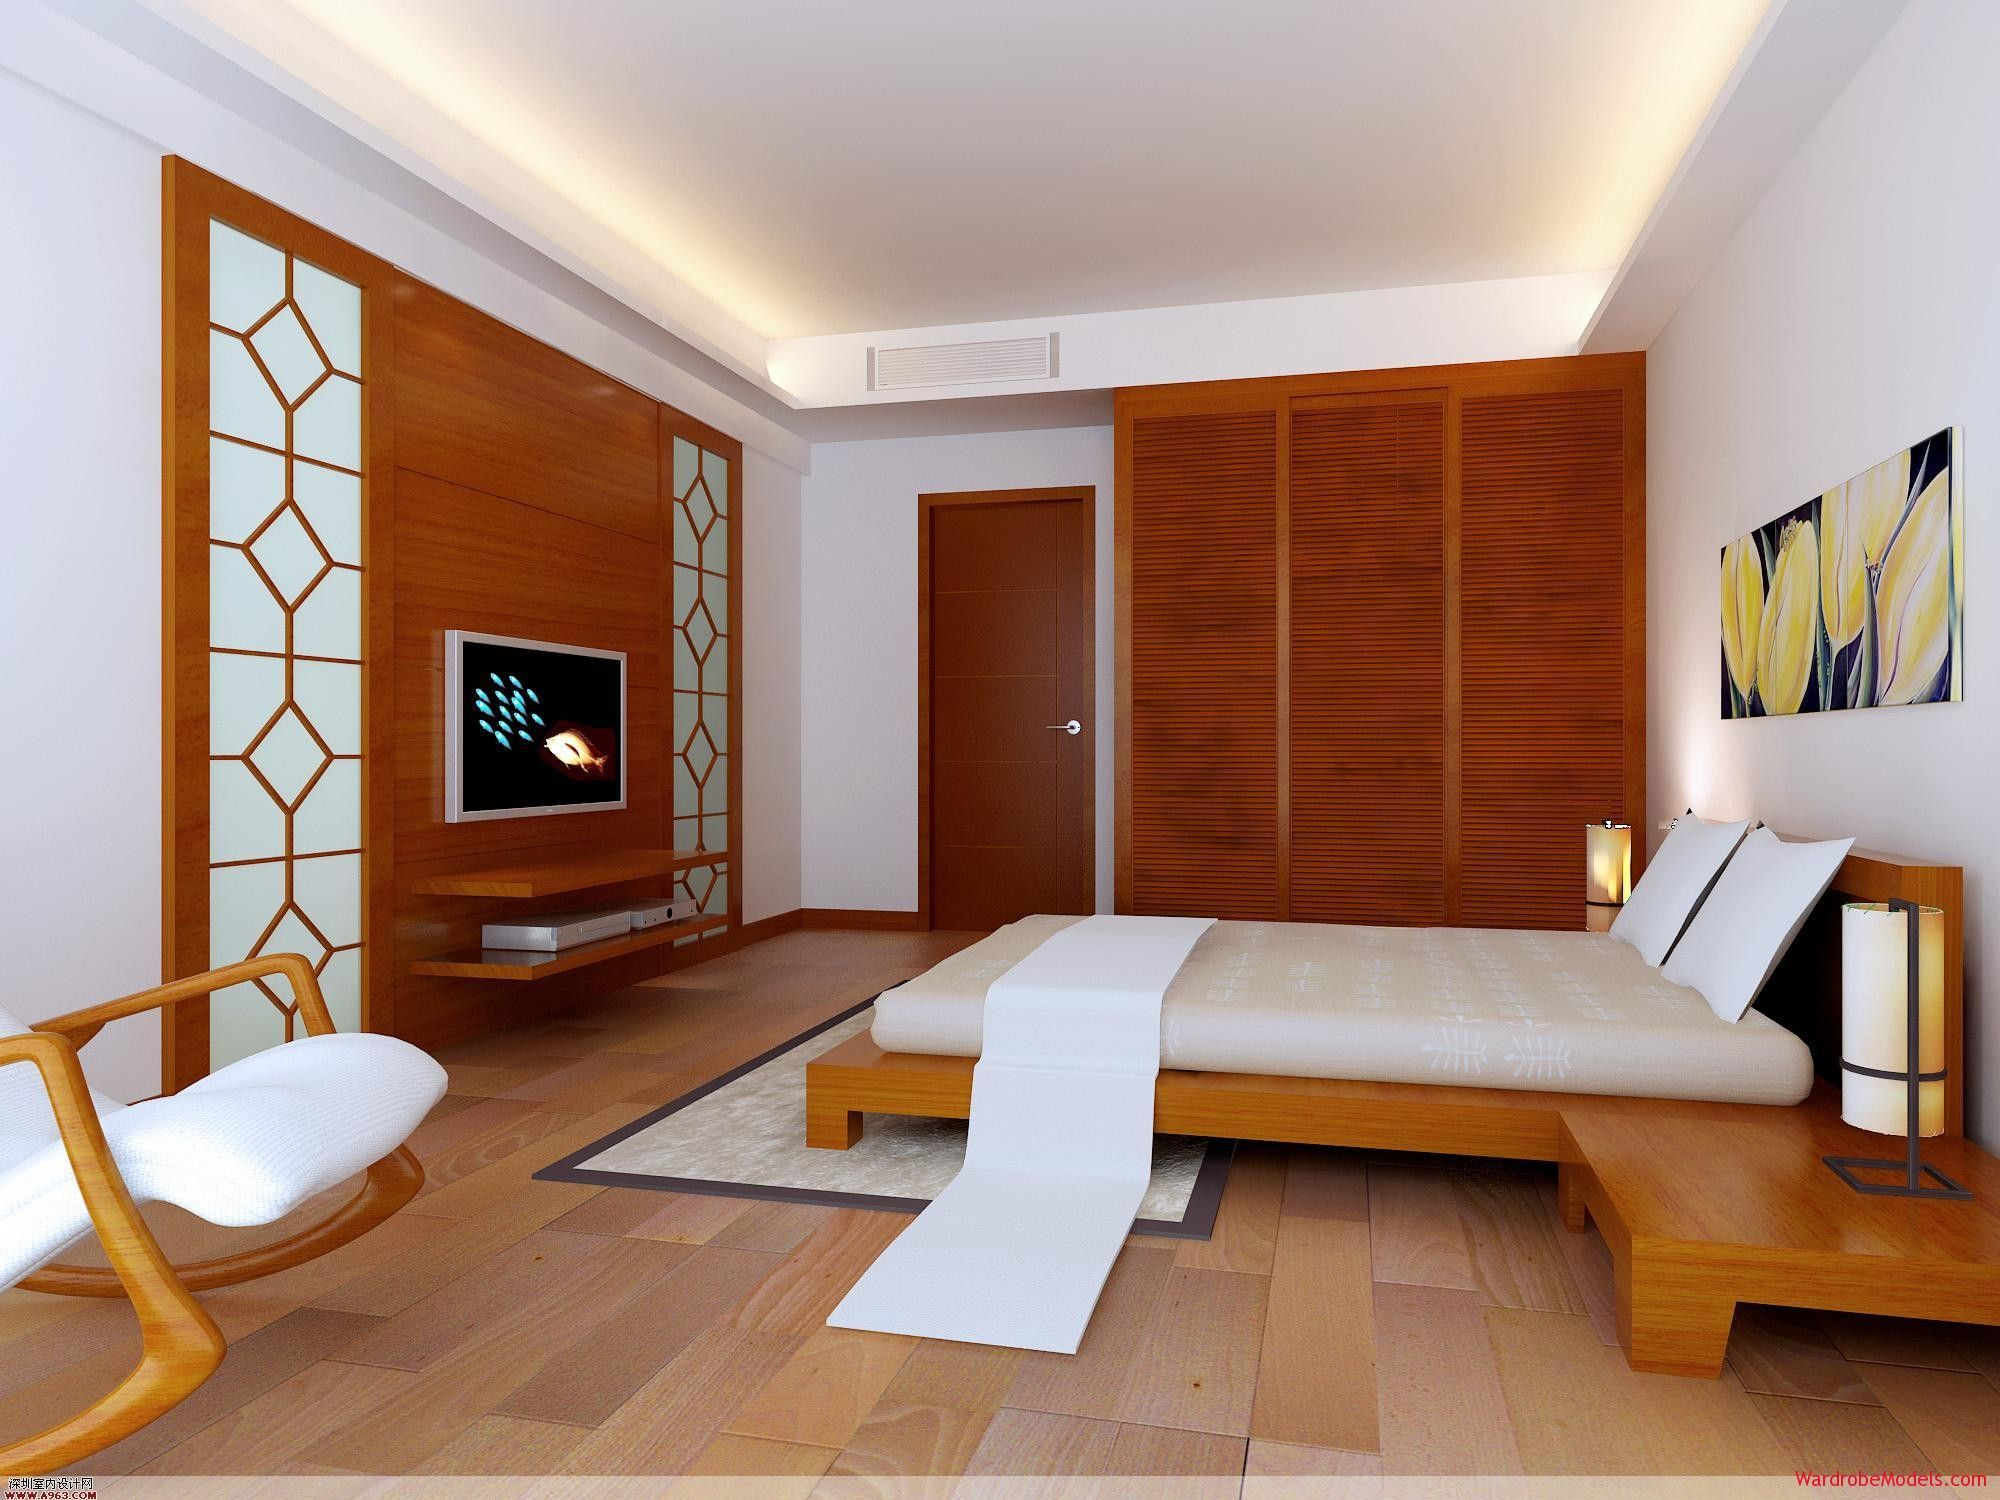 New Bedroom Designs new bedroom modern cupboard for 2014 | wardrobe models | wardrobe